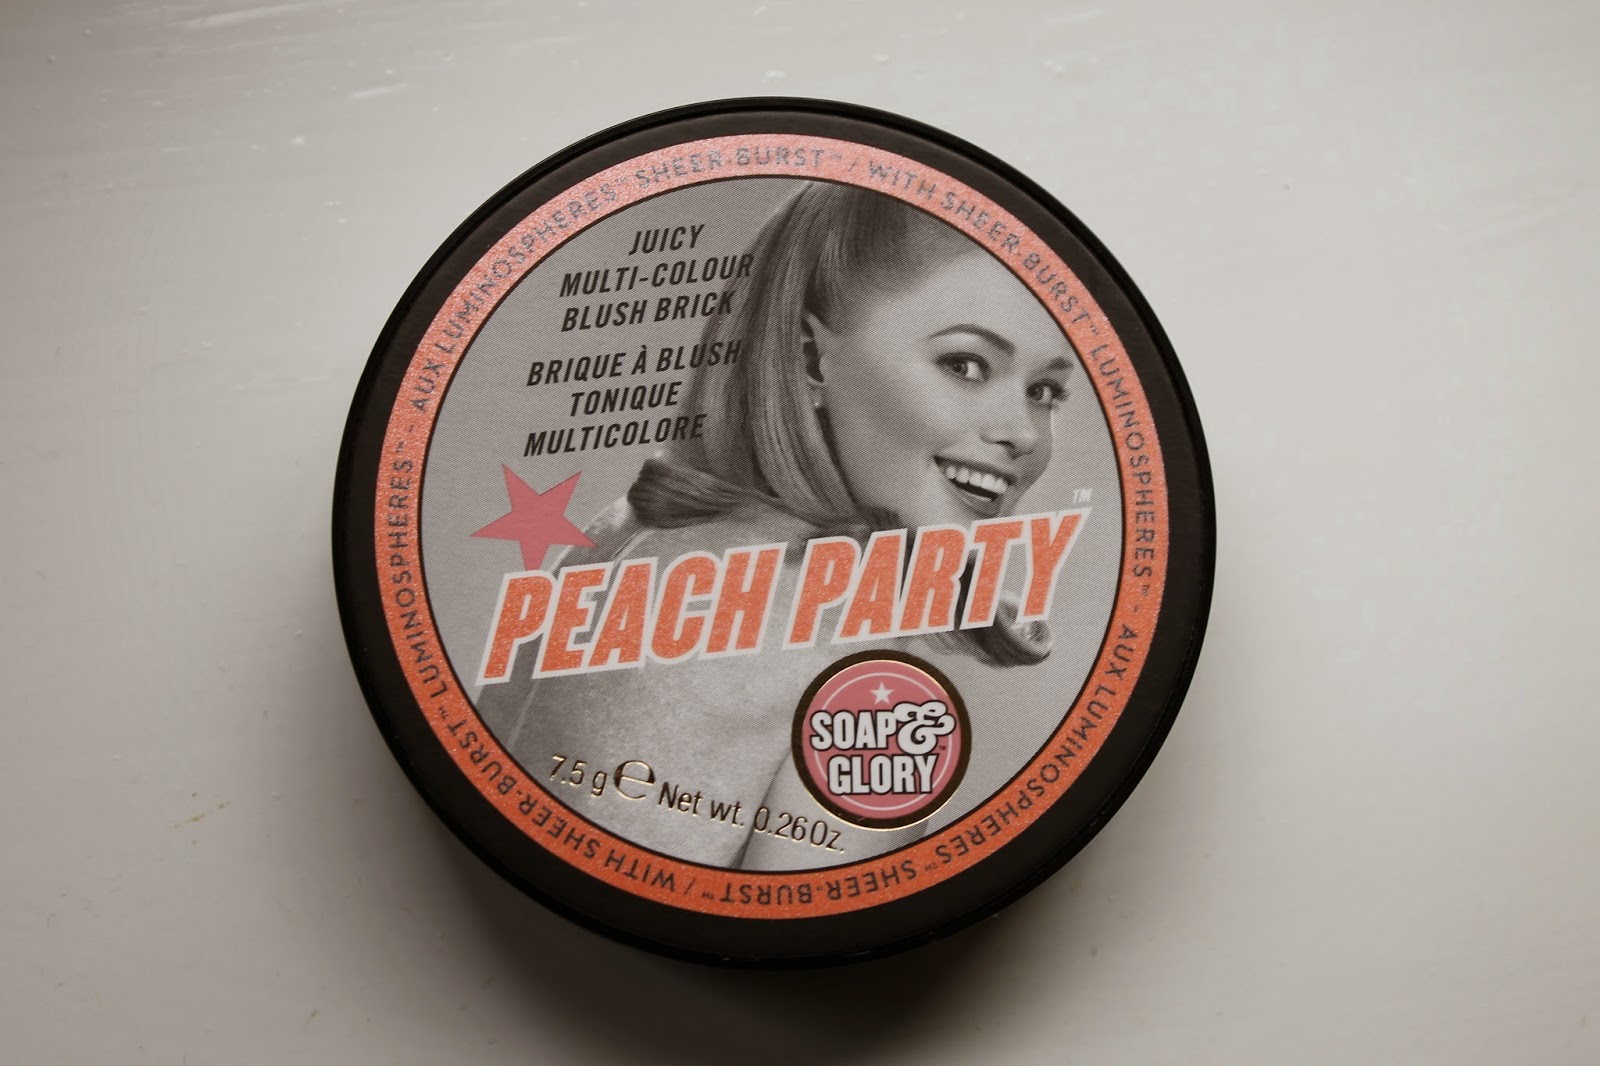 Soap and Glory Blush Brick in Peach Party